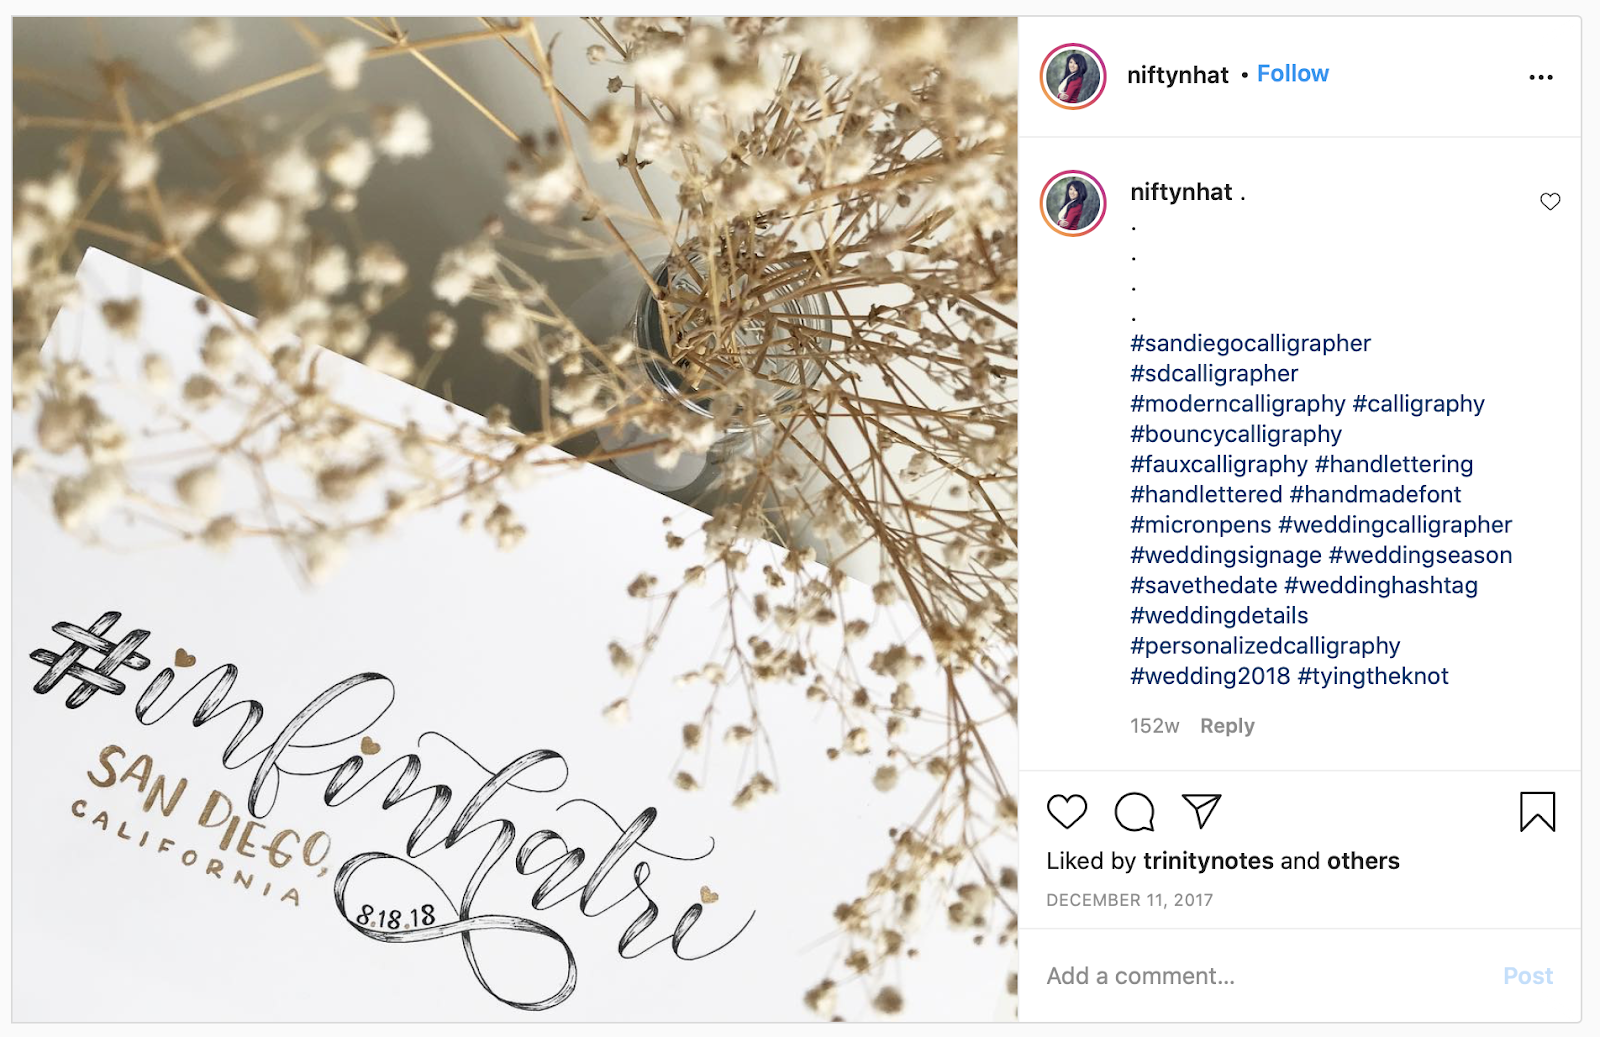 example of using the hashtag before the wedding